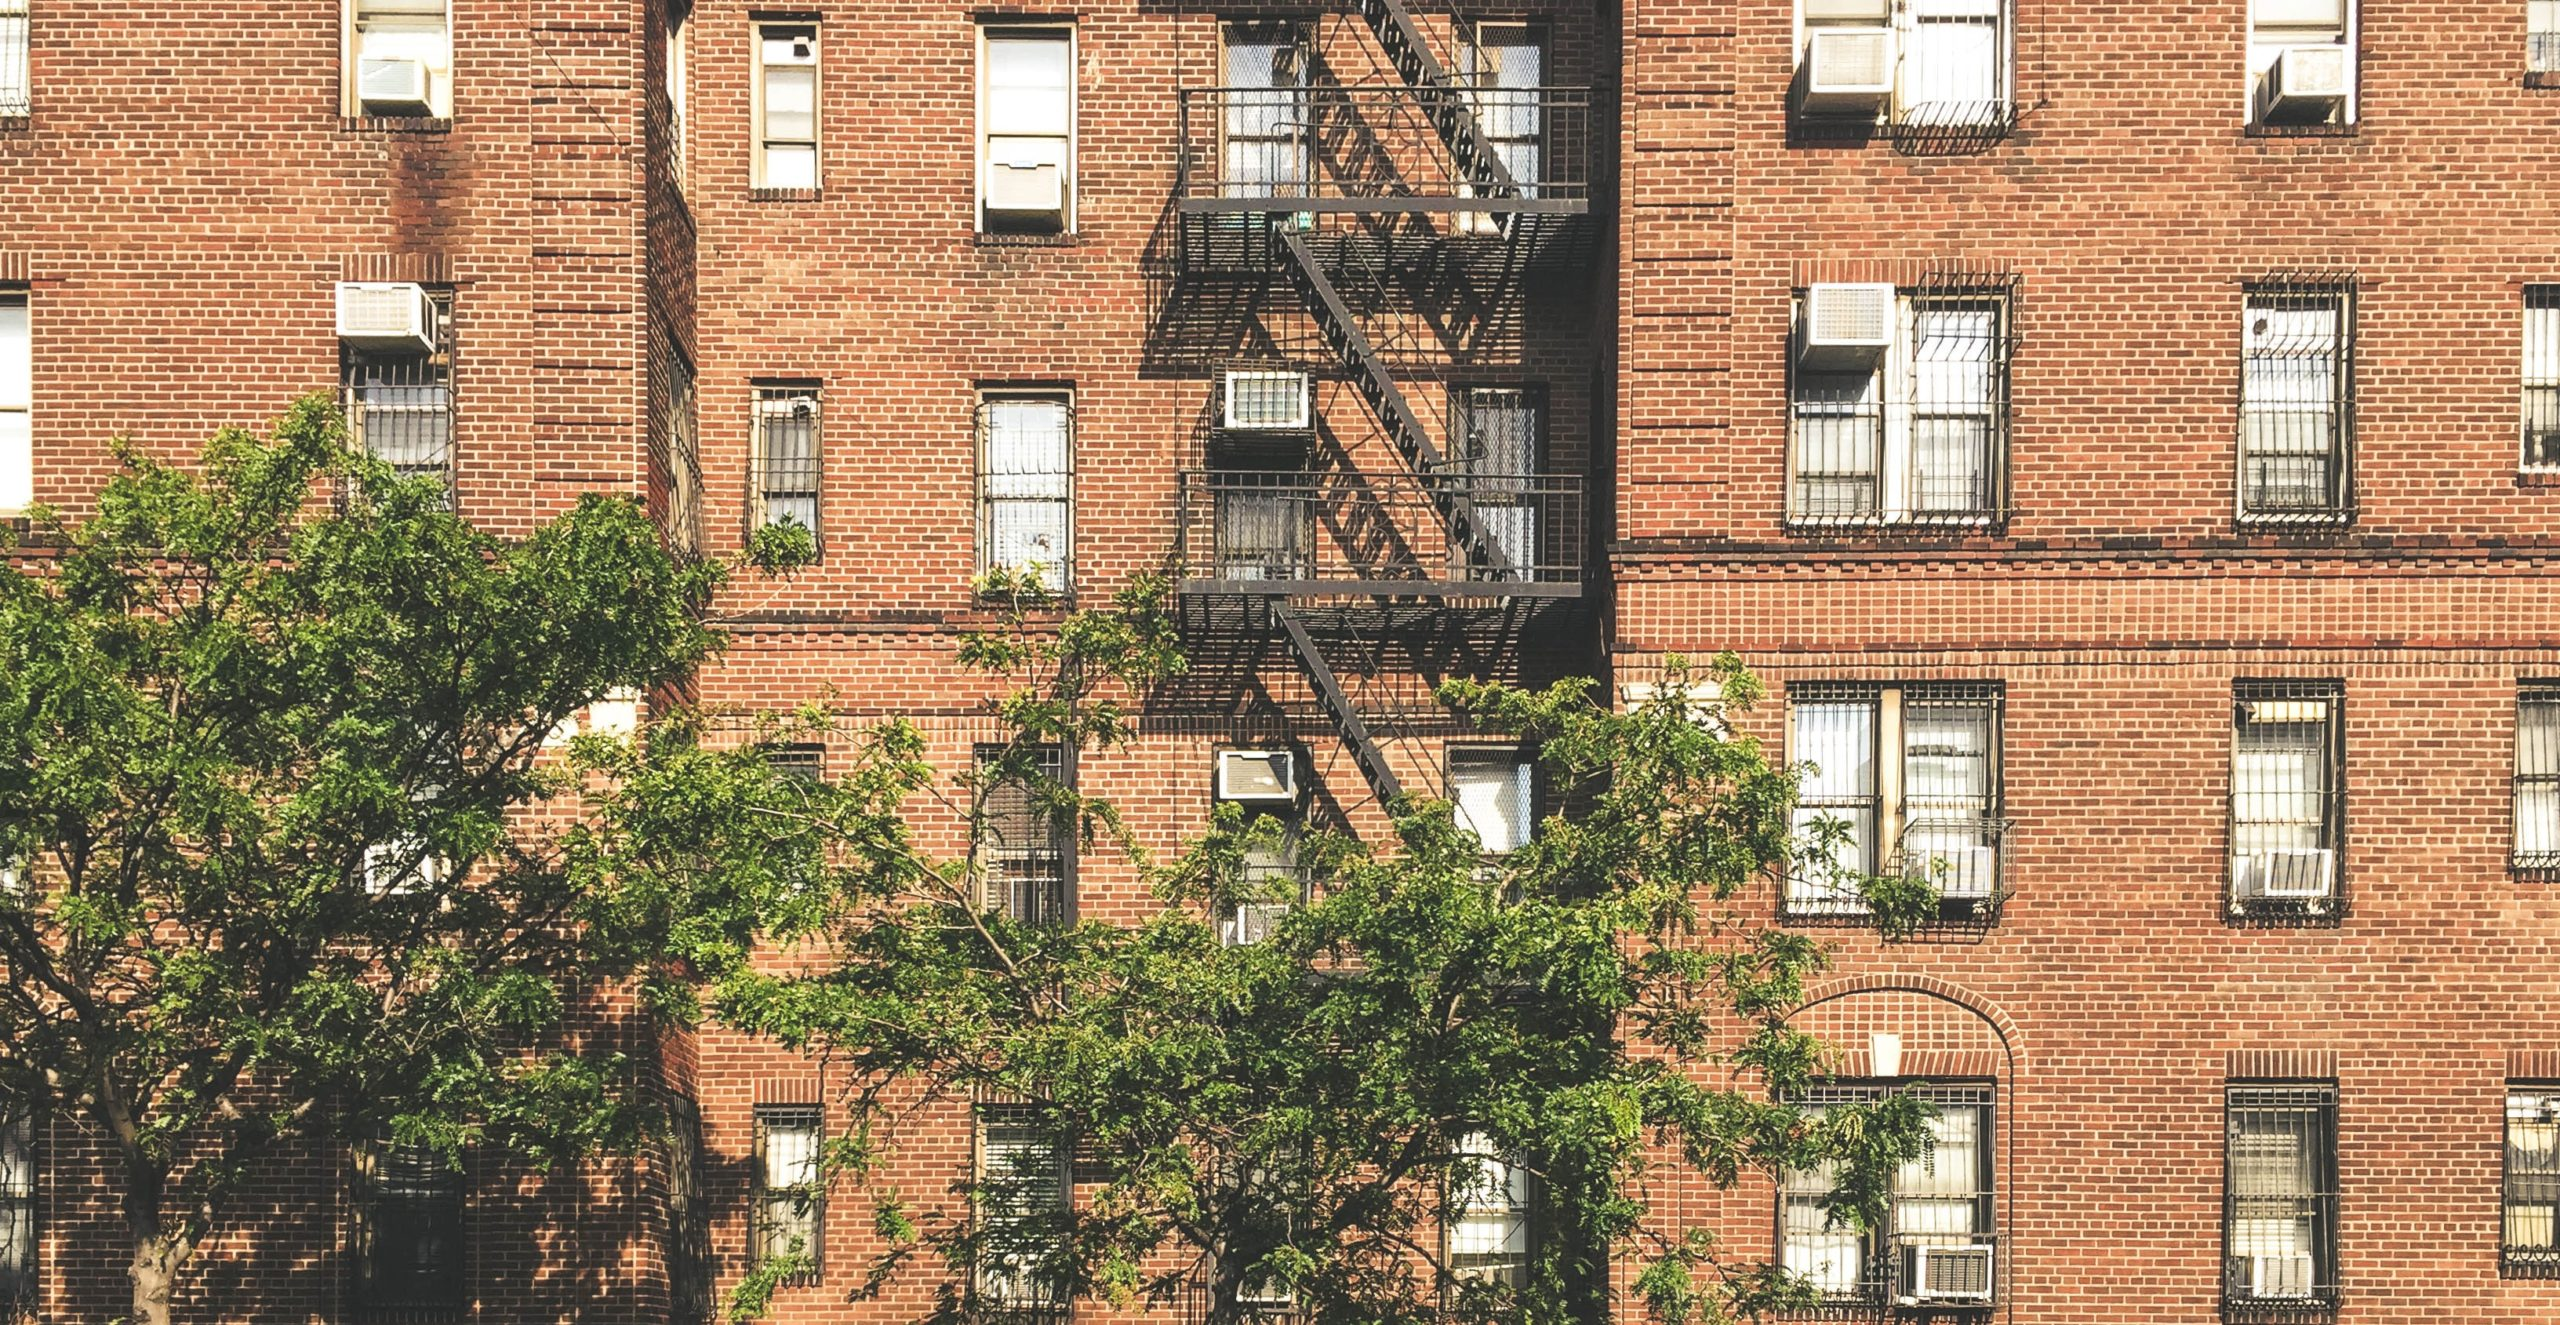 city affordable housing explained